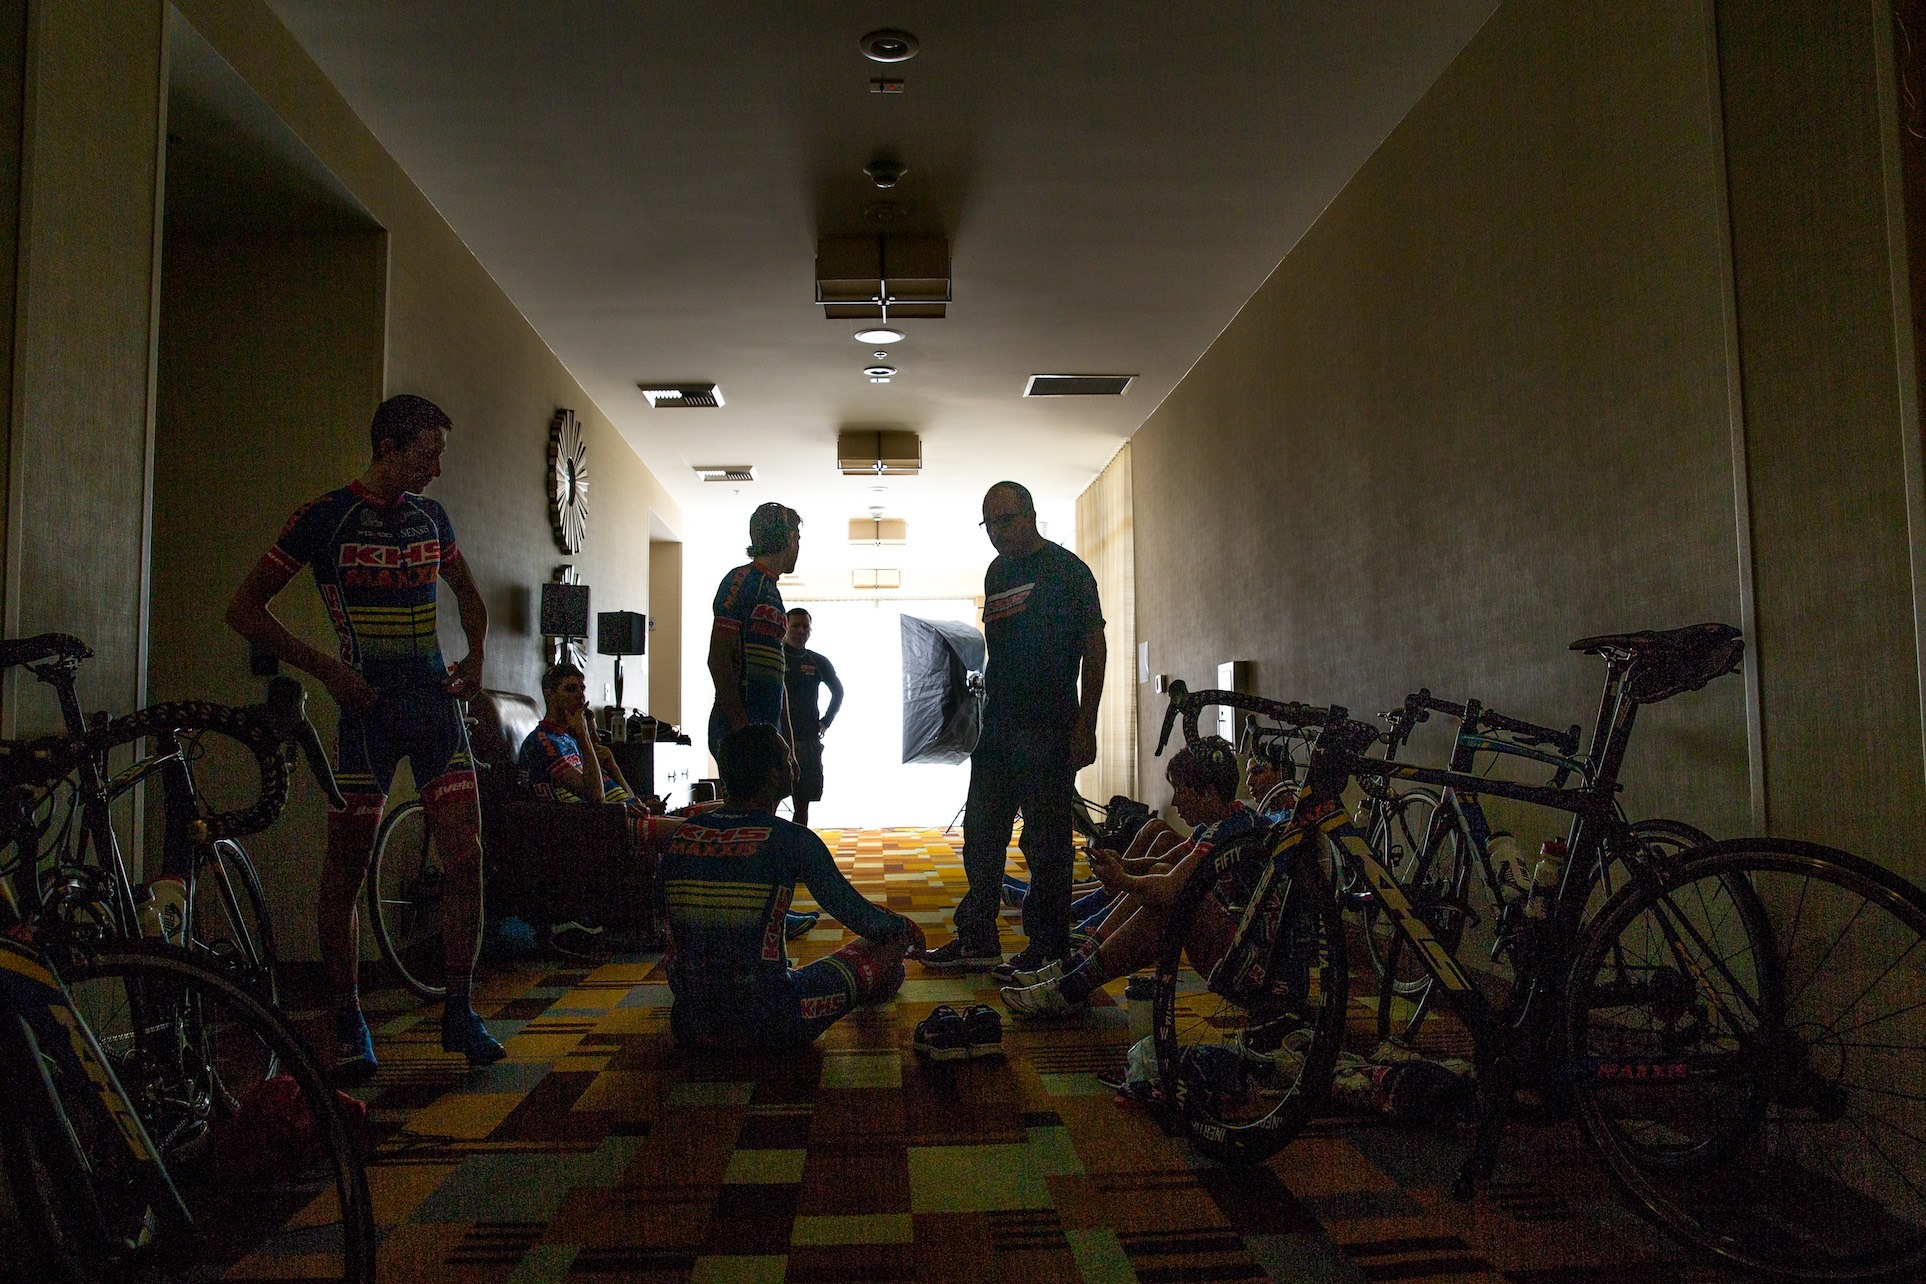 2016 KHS Maxis JLVelo team camp discussion.